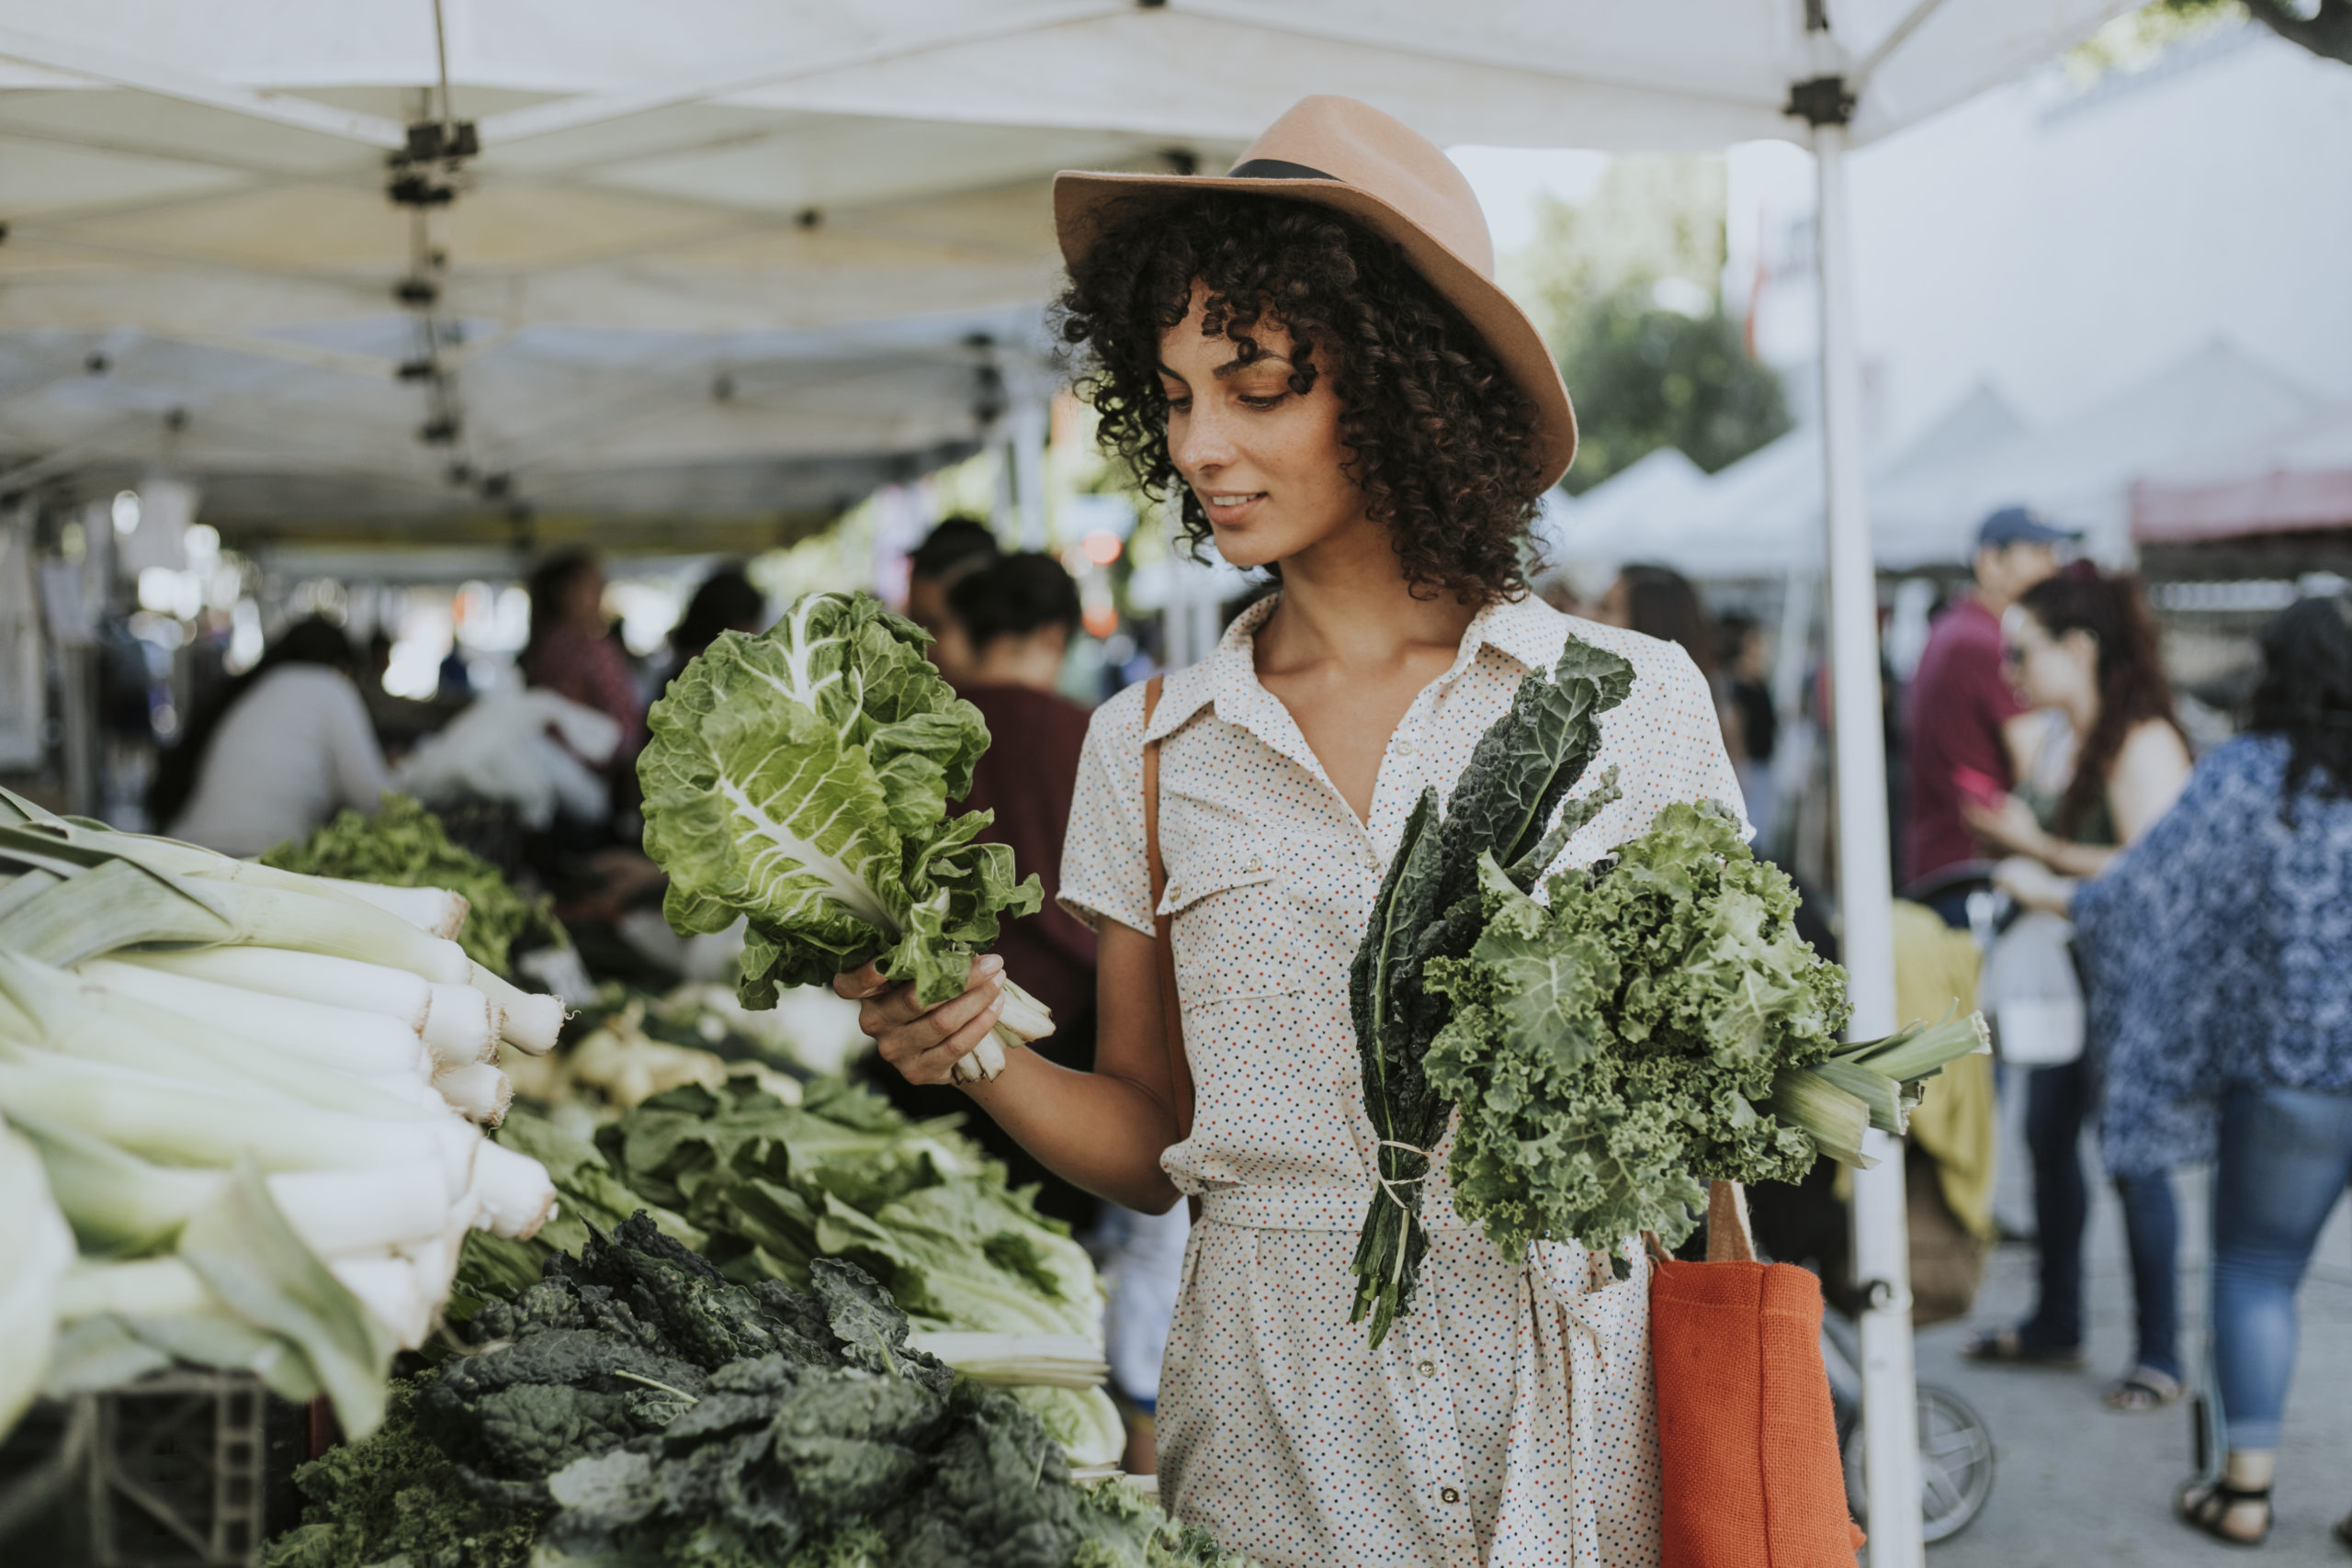 Woman shopping for vegetables at an open air market | Catonsville farmer's market